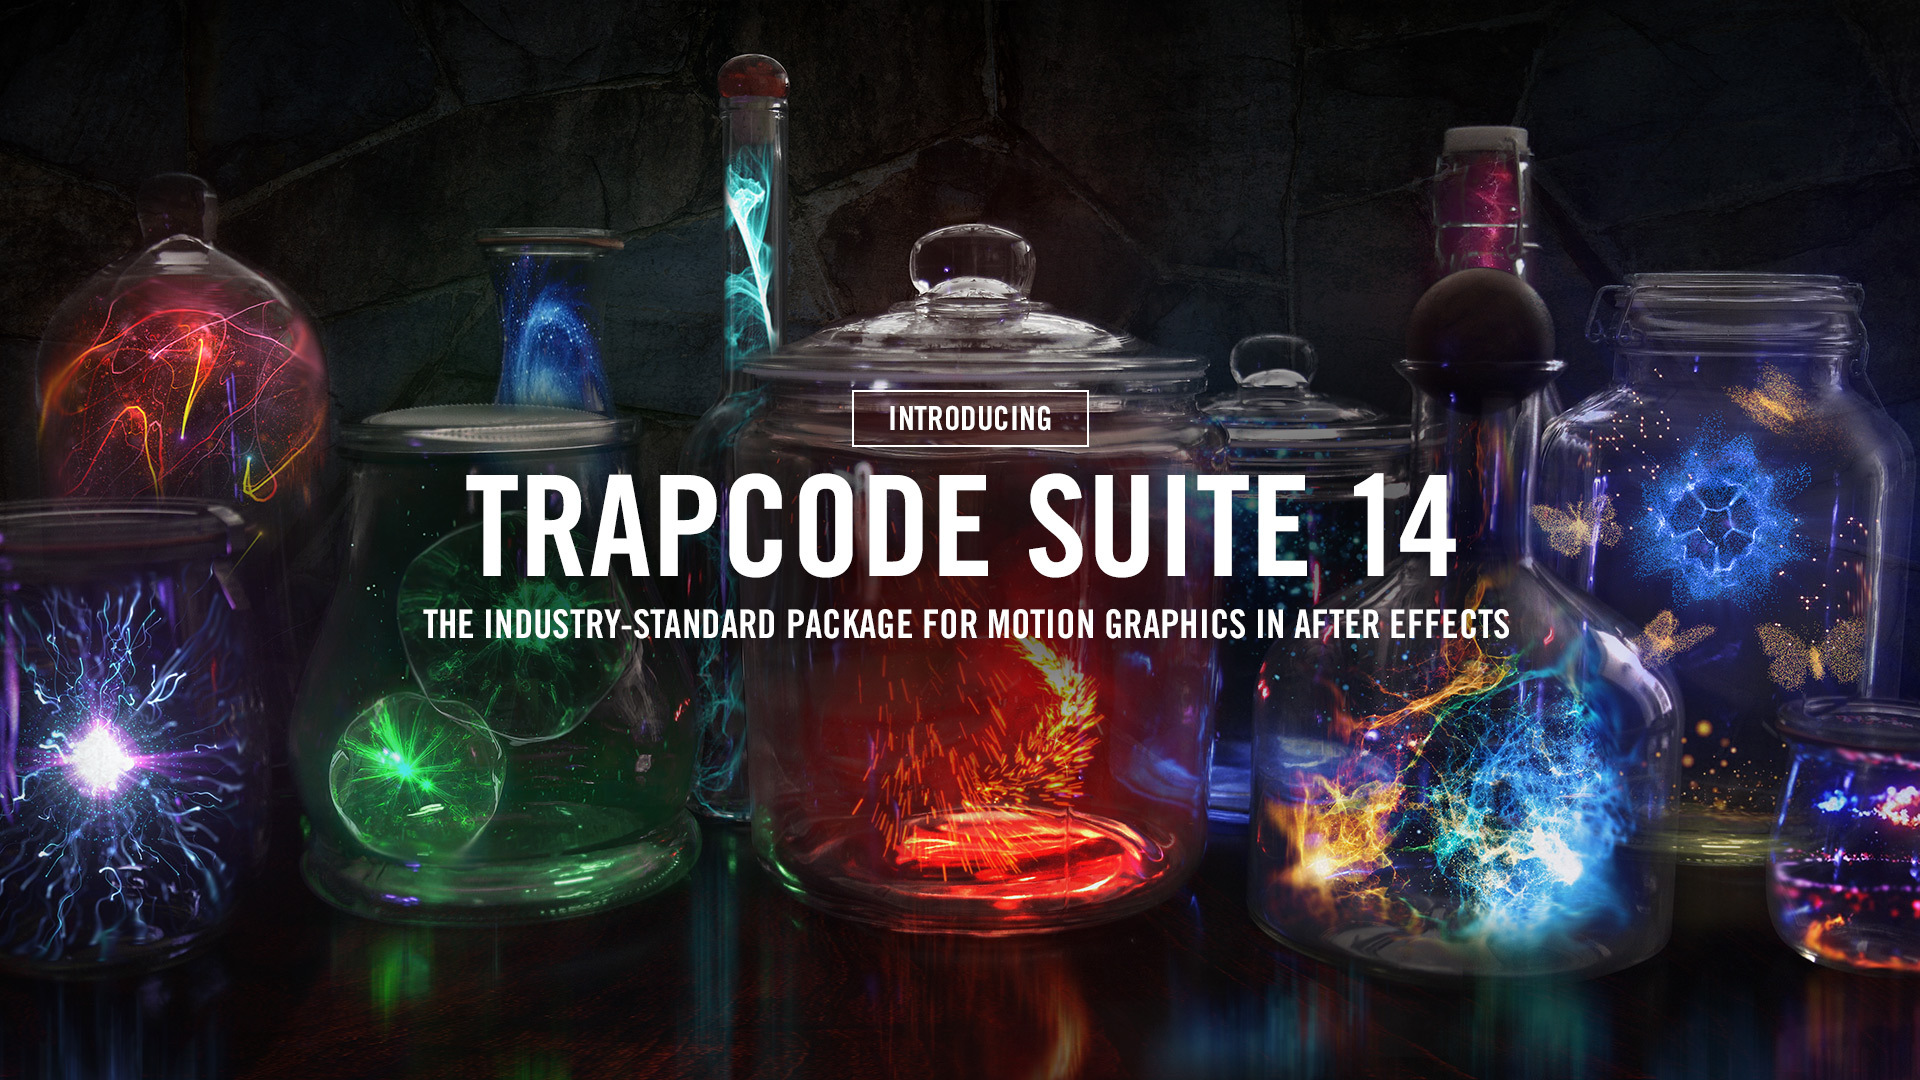 Red Giant | Introducing Trapcode Suite 14